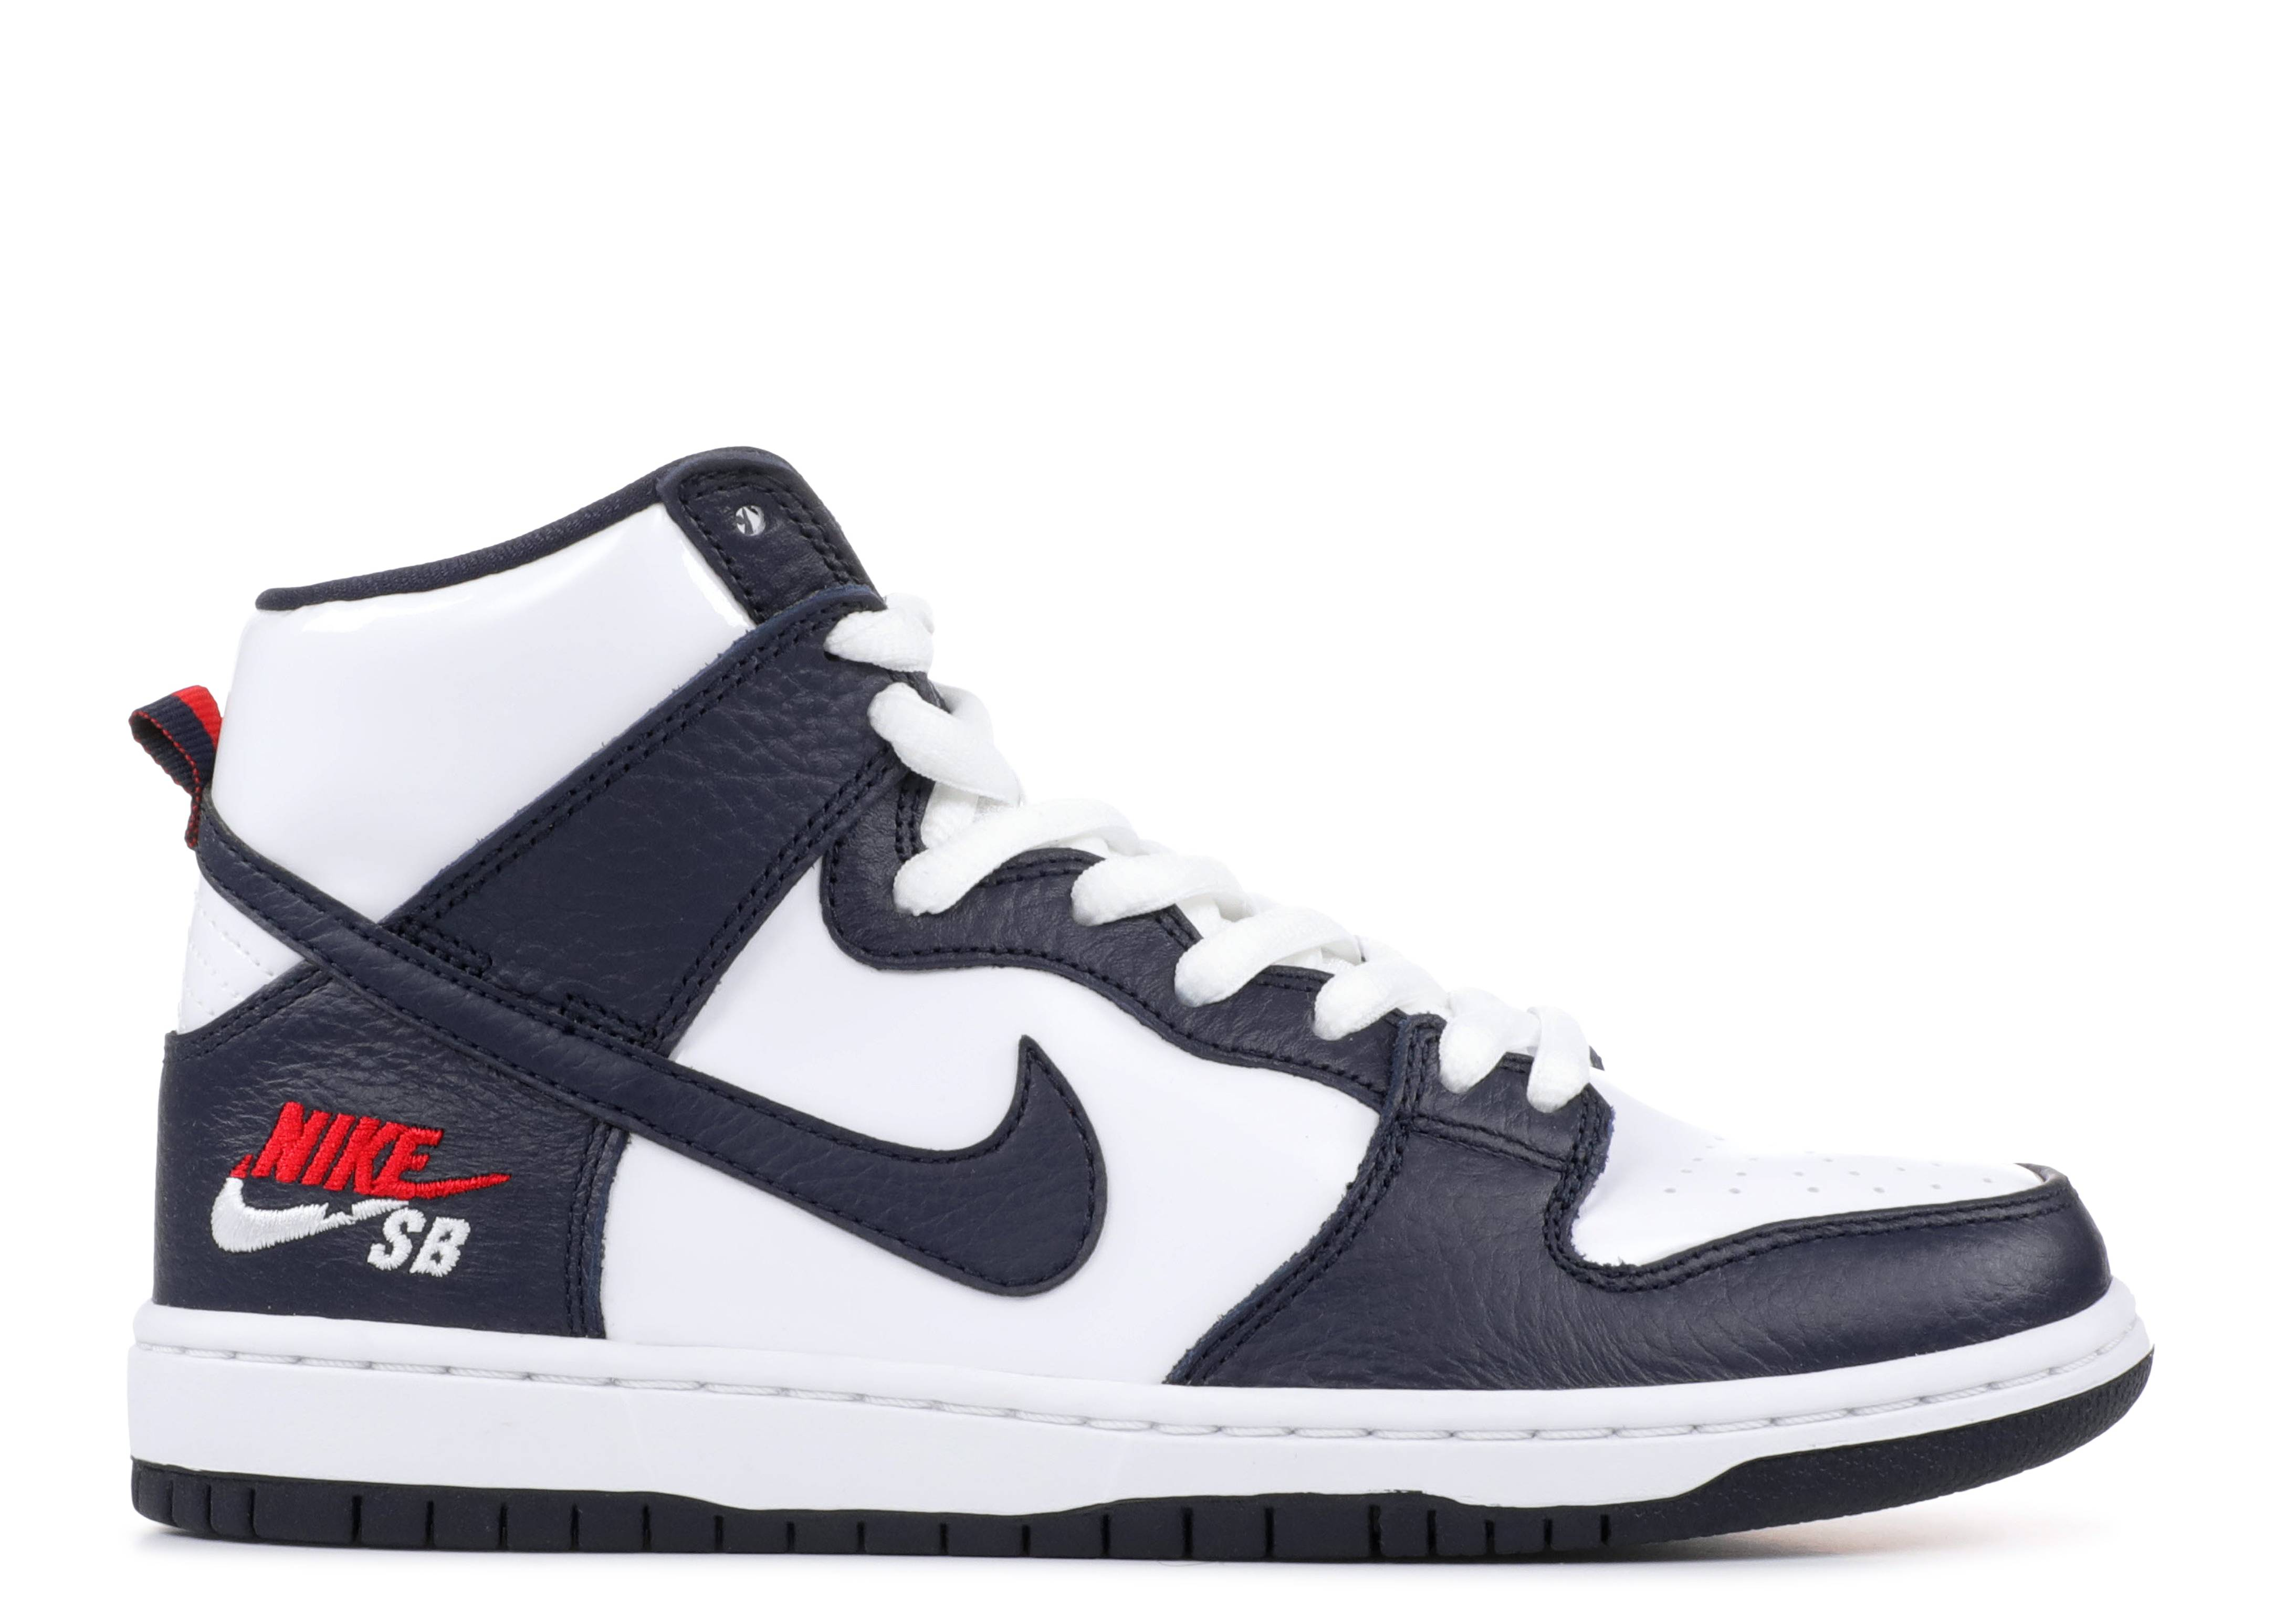 nike sb zoom dunk high pro nike 854851 441 obsidian obsidian white flight club